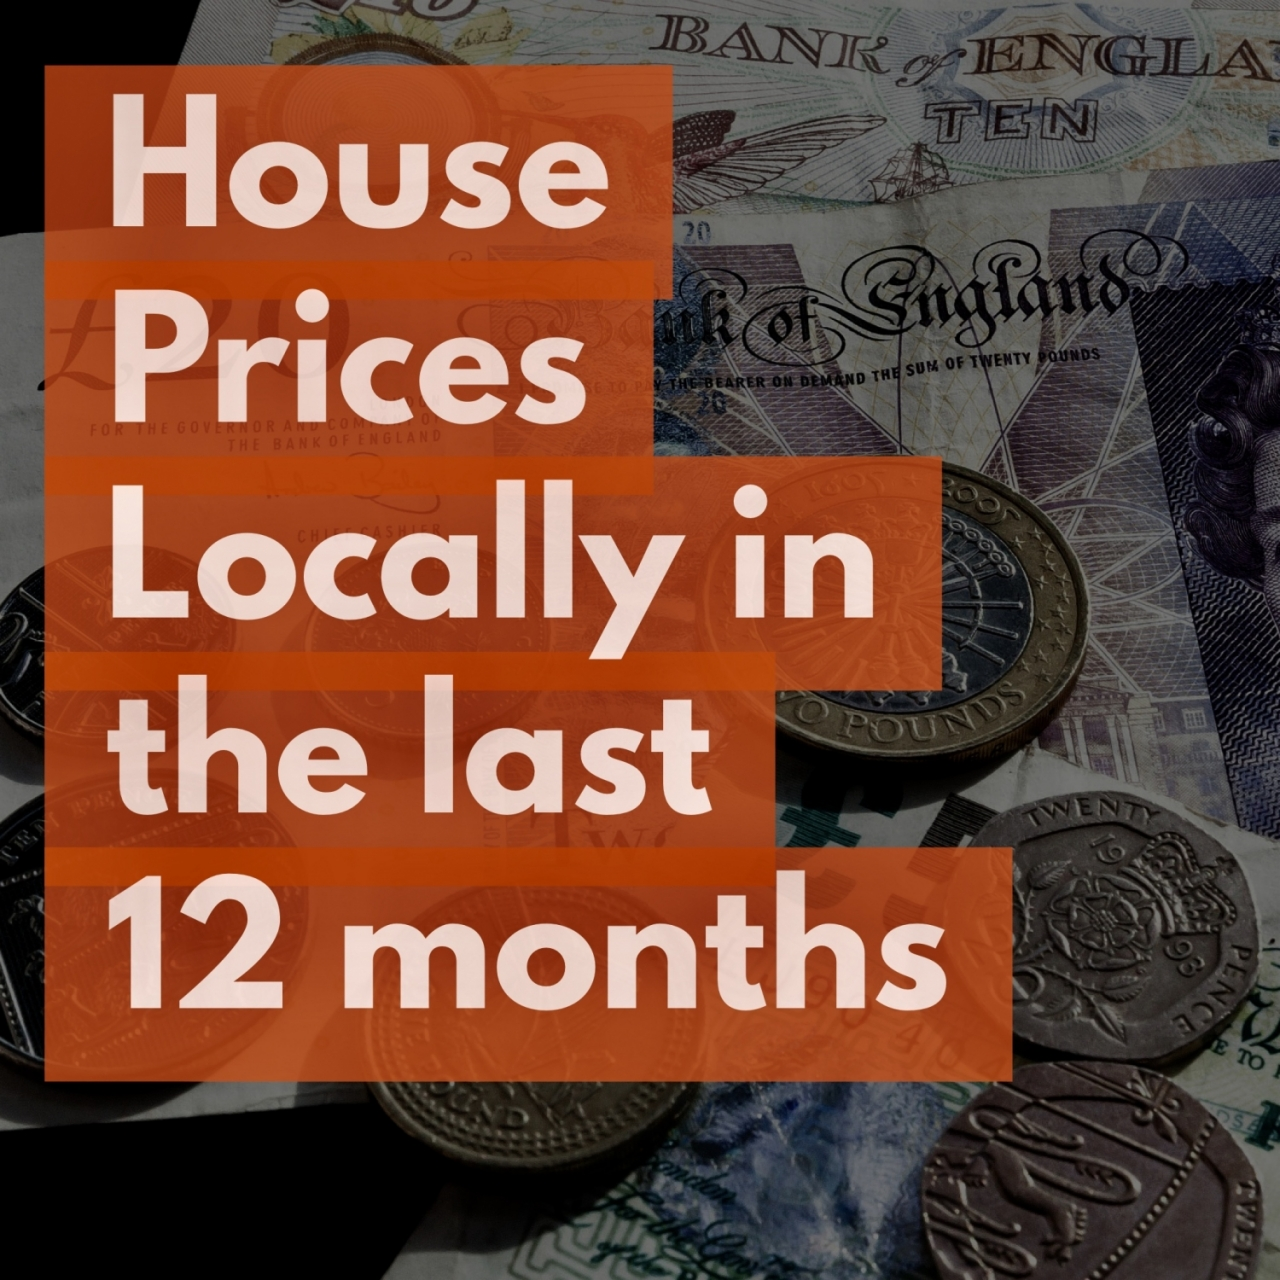 >Sidcup House Prices Fall 0.3% in a Year